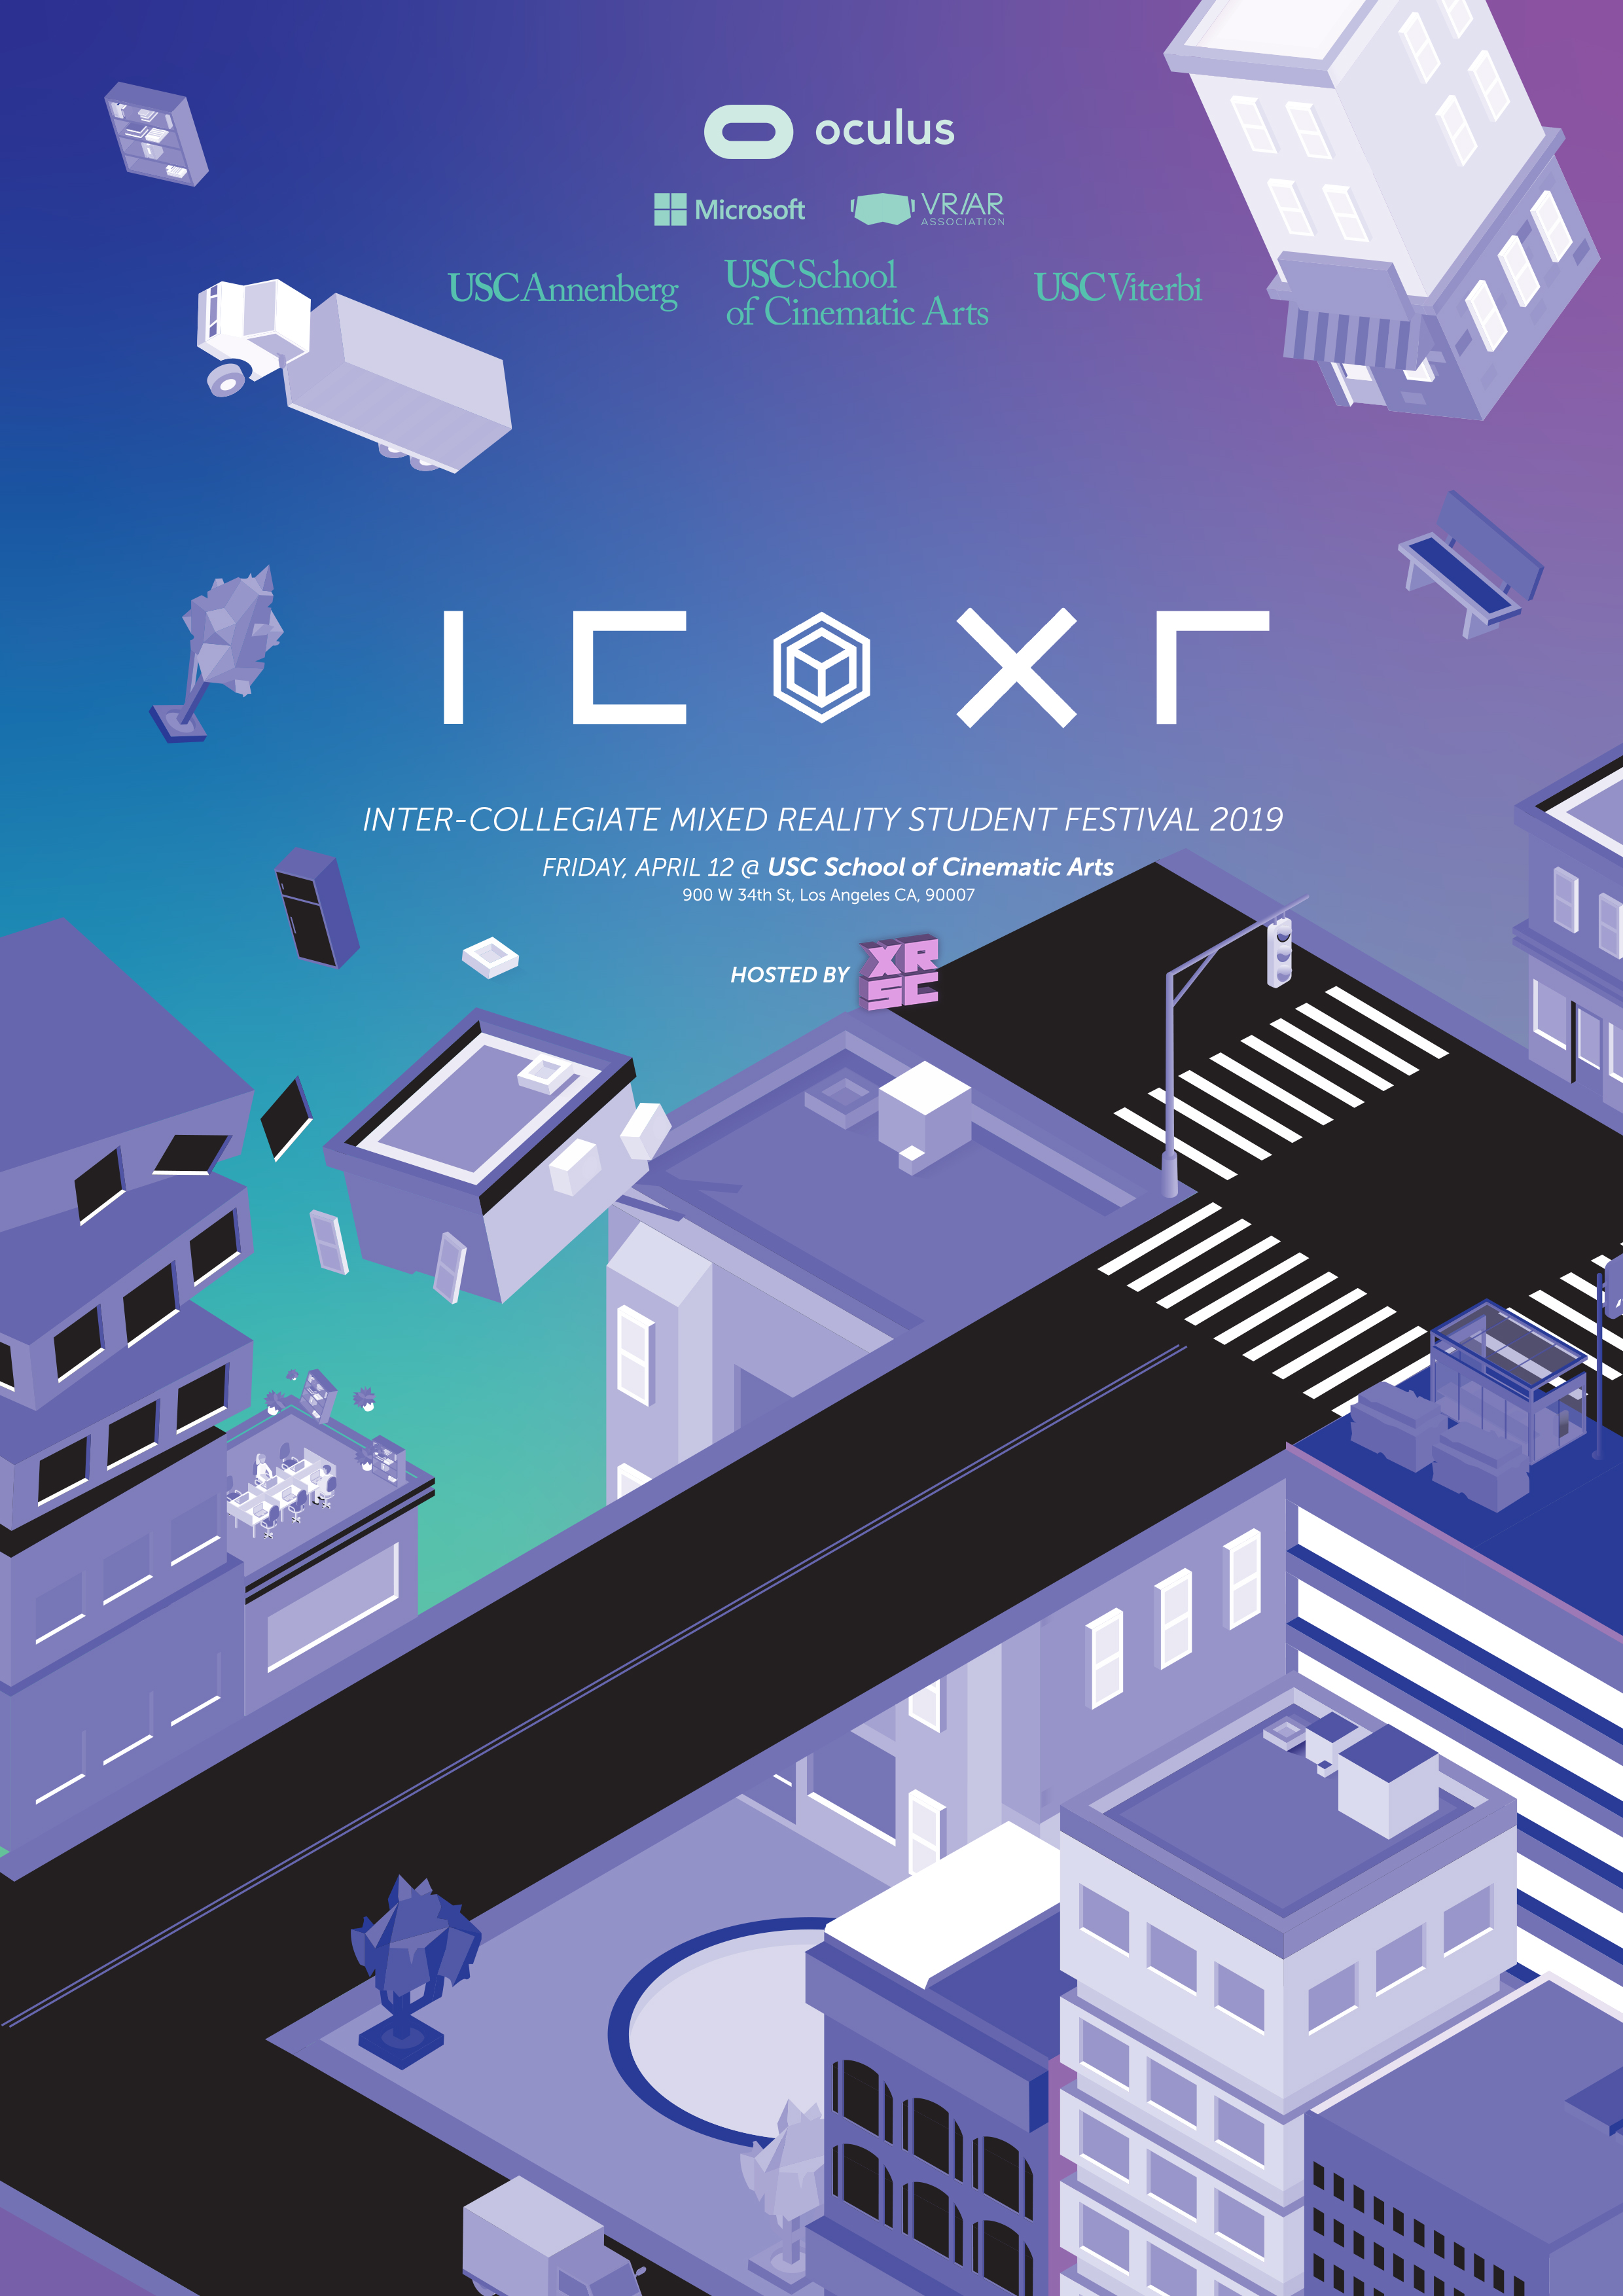 ICXR 2019 Festival Branding - Creating a distinct visual identity for the 1st annual Inter-Collegiate Mixed Reality Student Festival